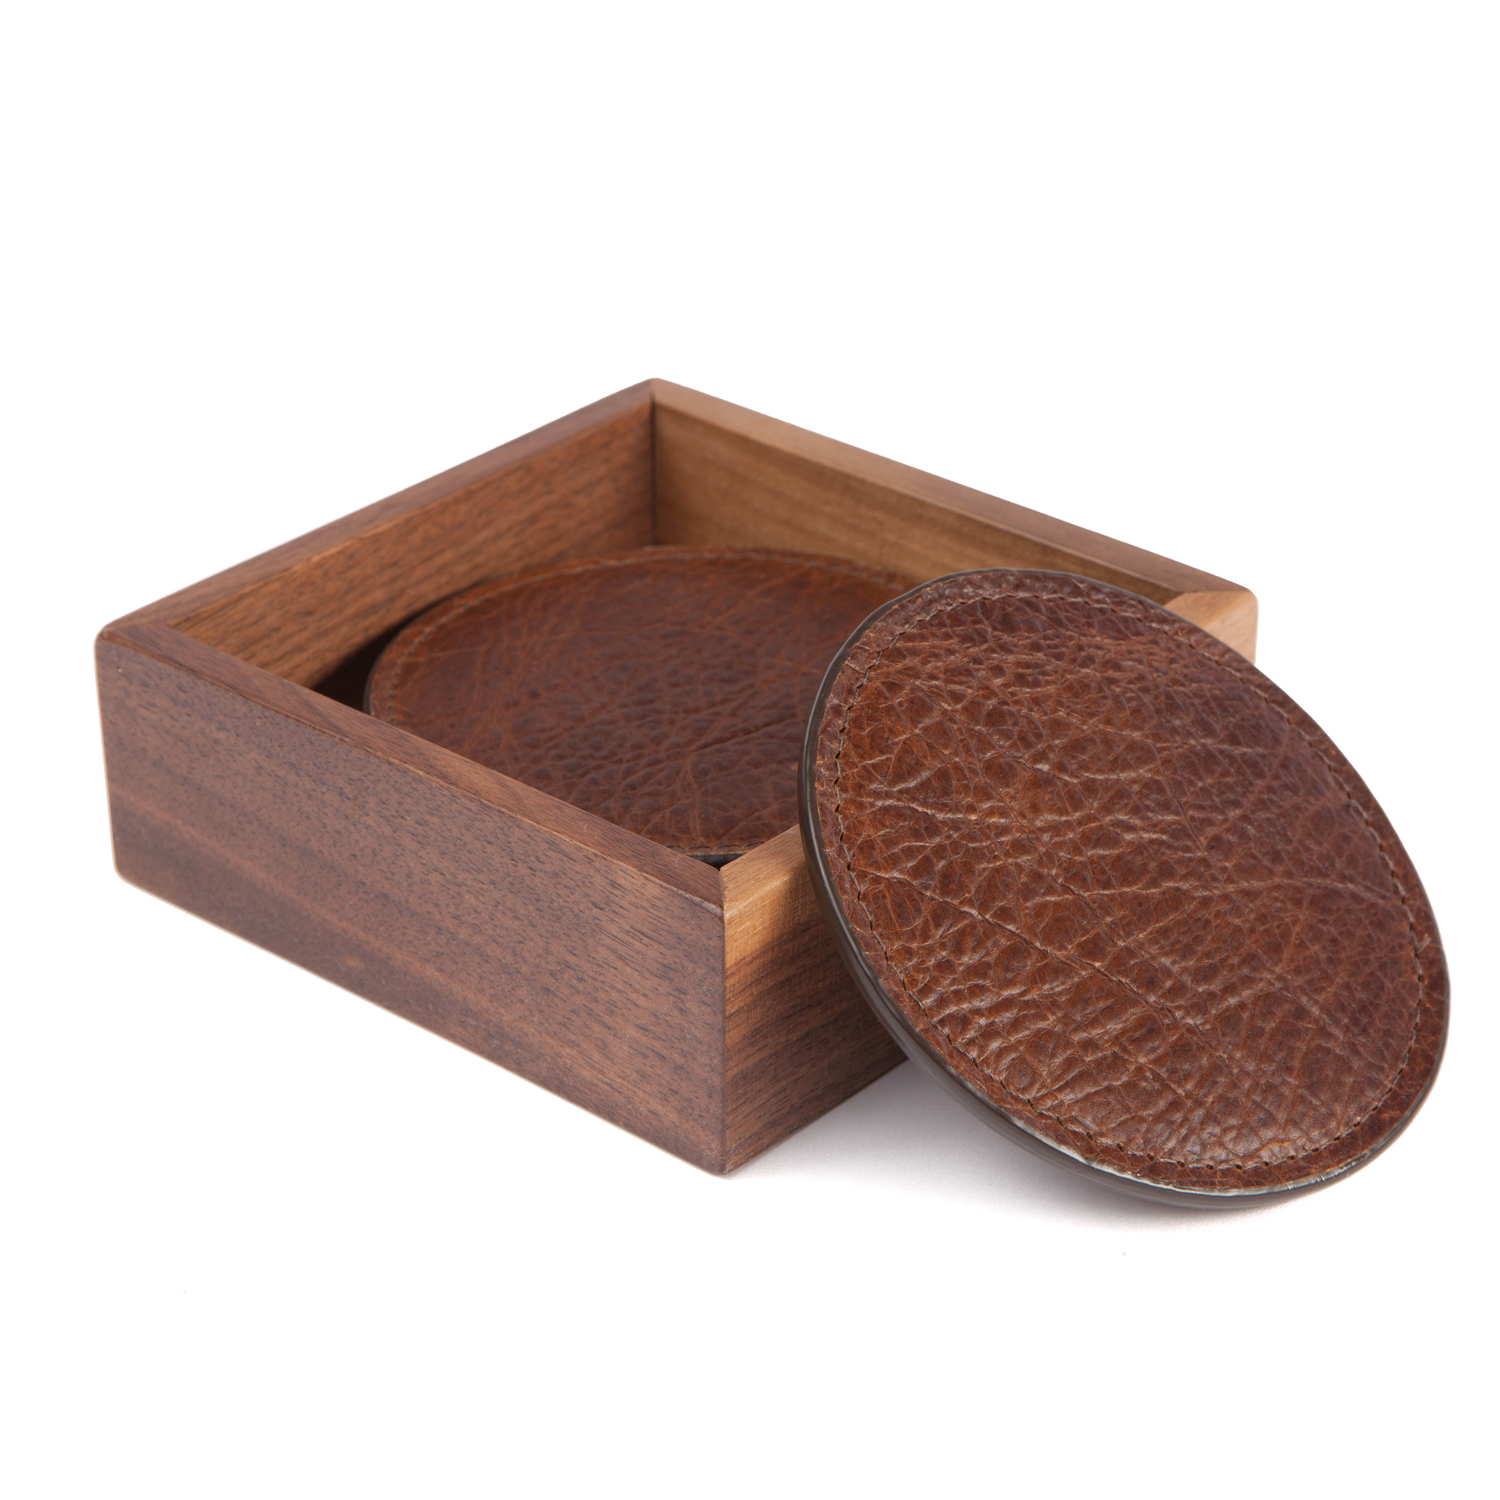 Moore giles leather coasters with walnut box for Moore and giles furniture